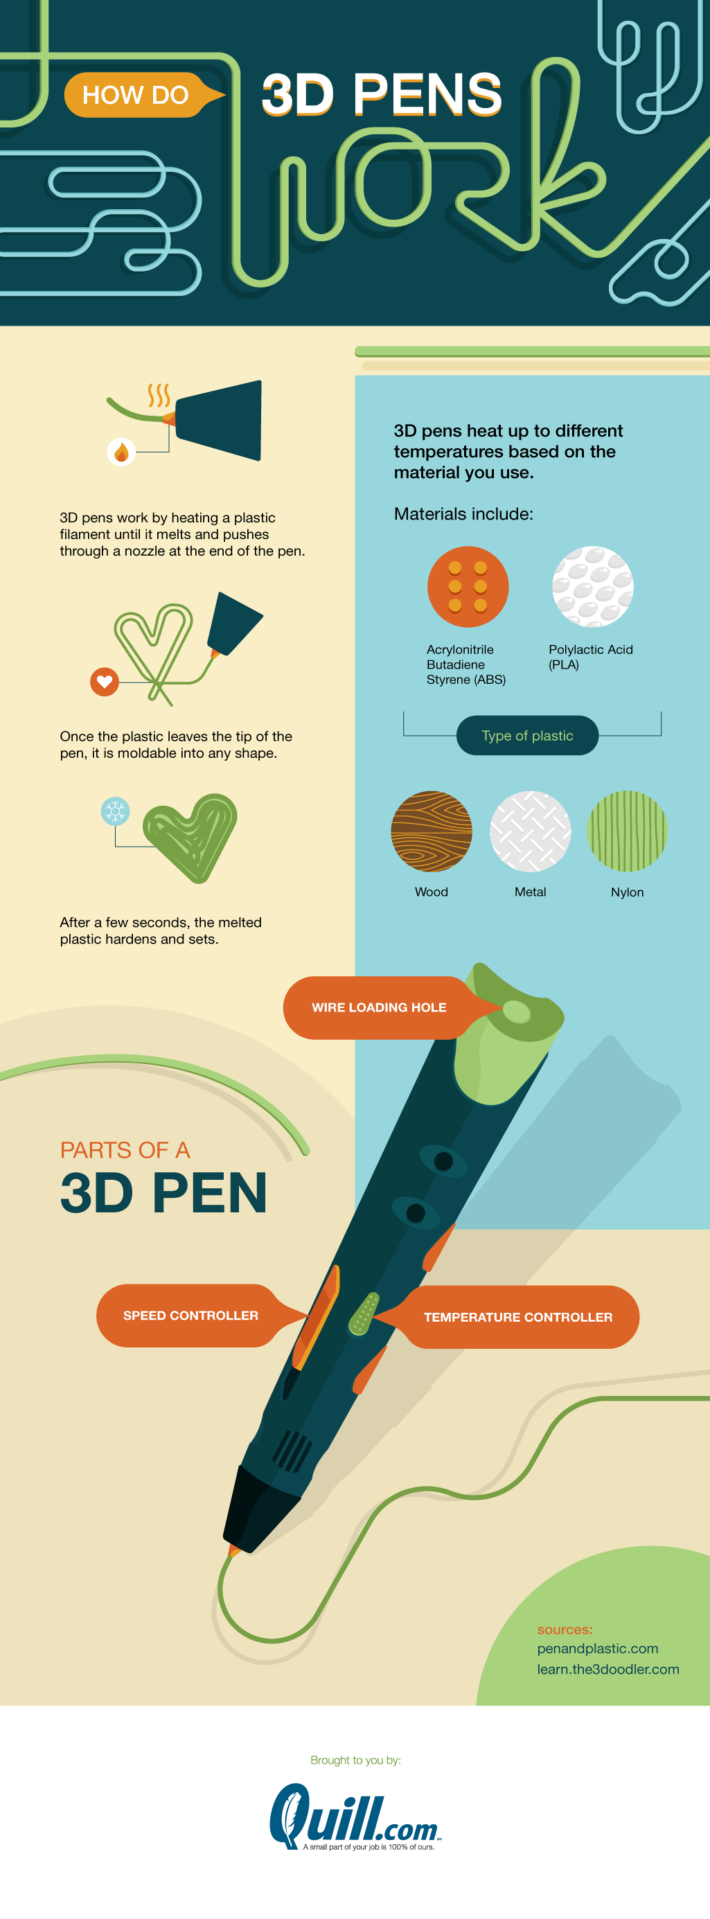 How to use a 3D pen